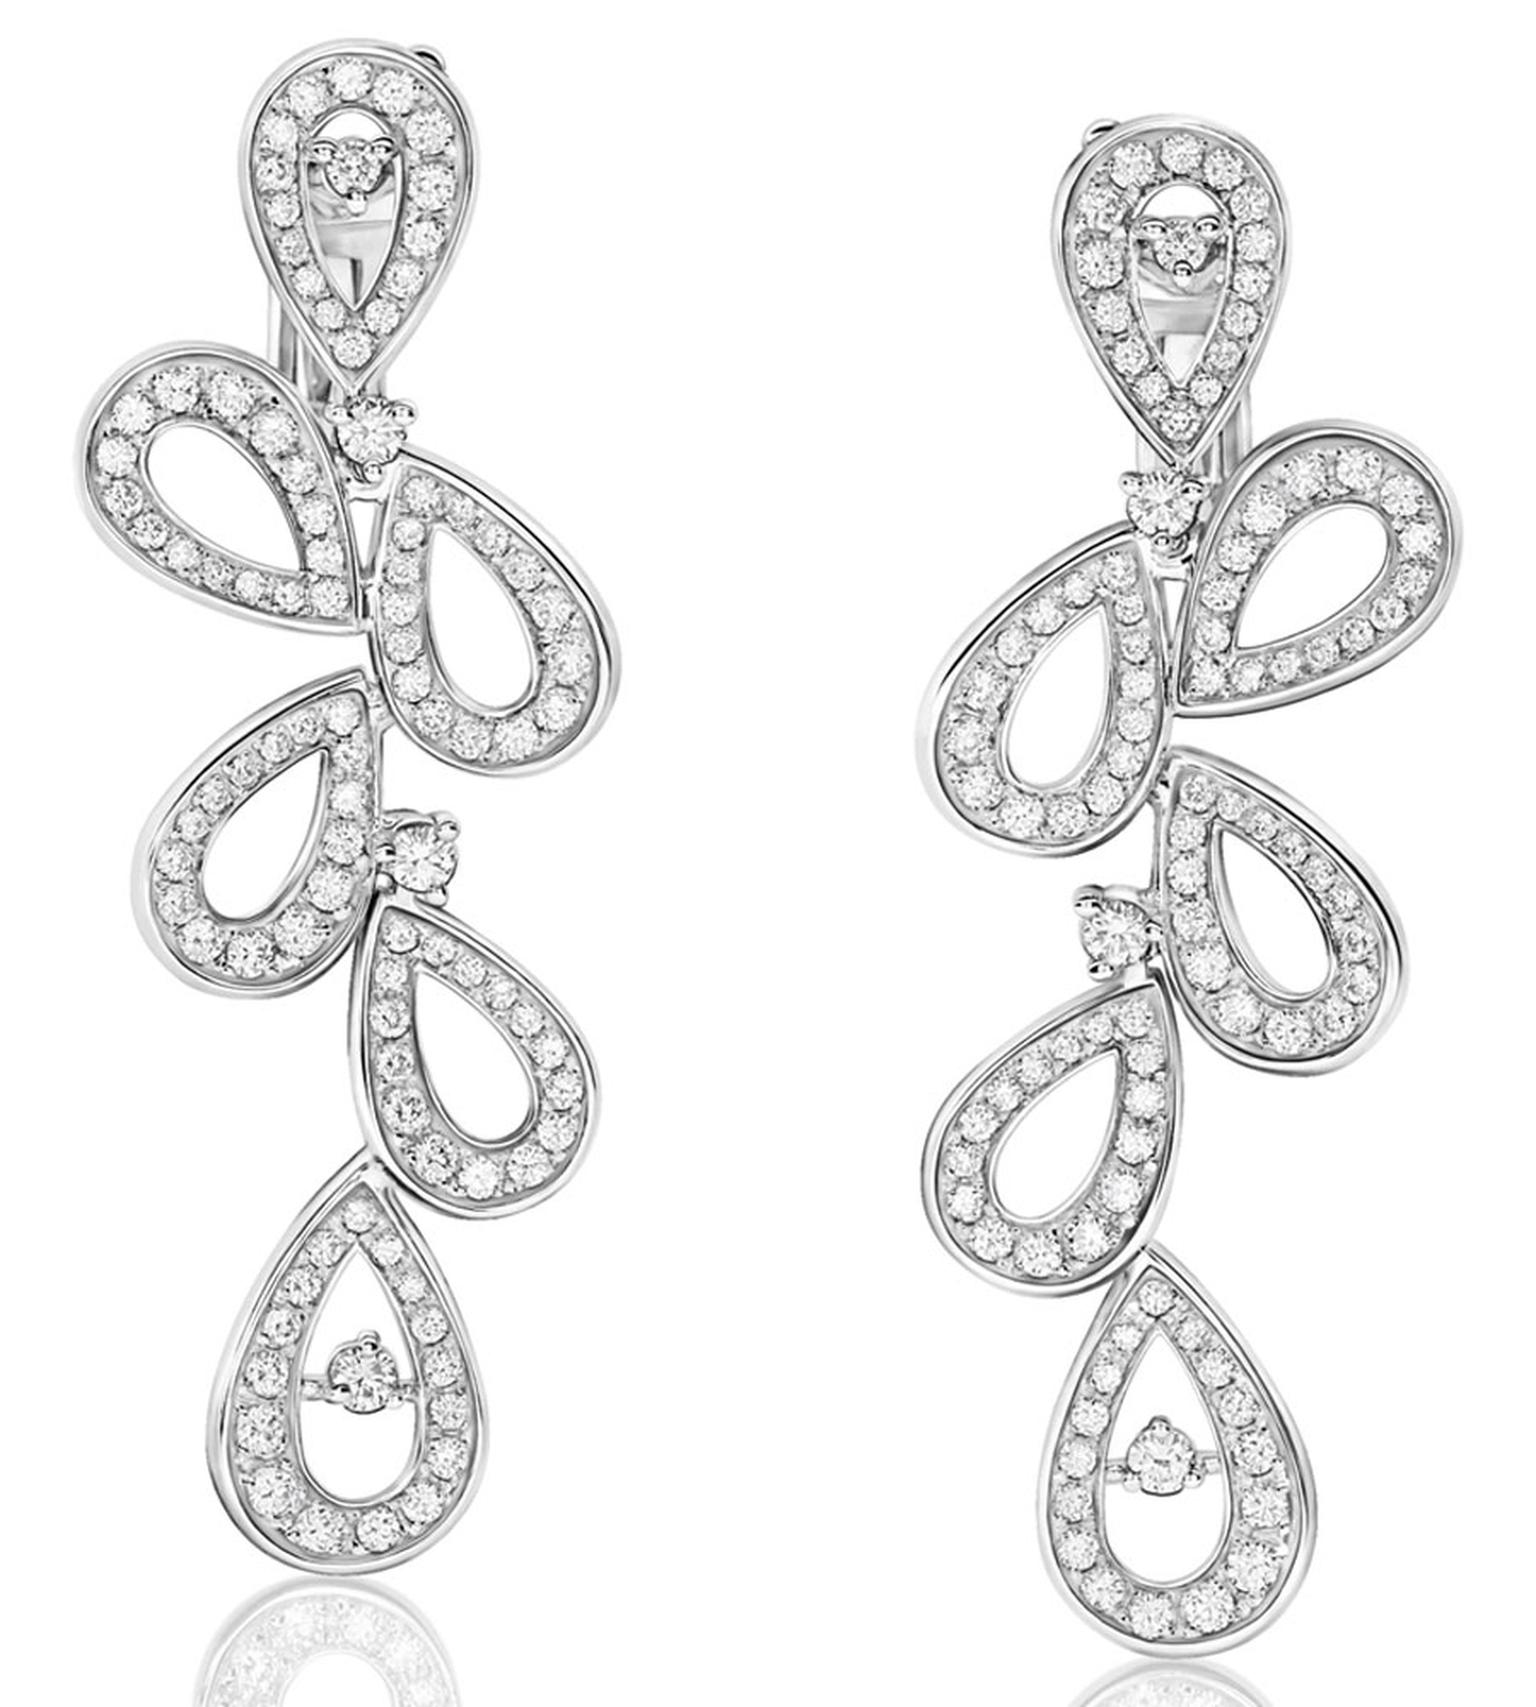 Montblanc_Collection_Princesse_Grace_de_Monaco_Petales_de_Rose_motif_earrings_107971